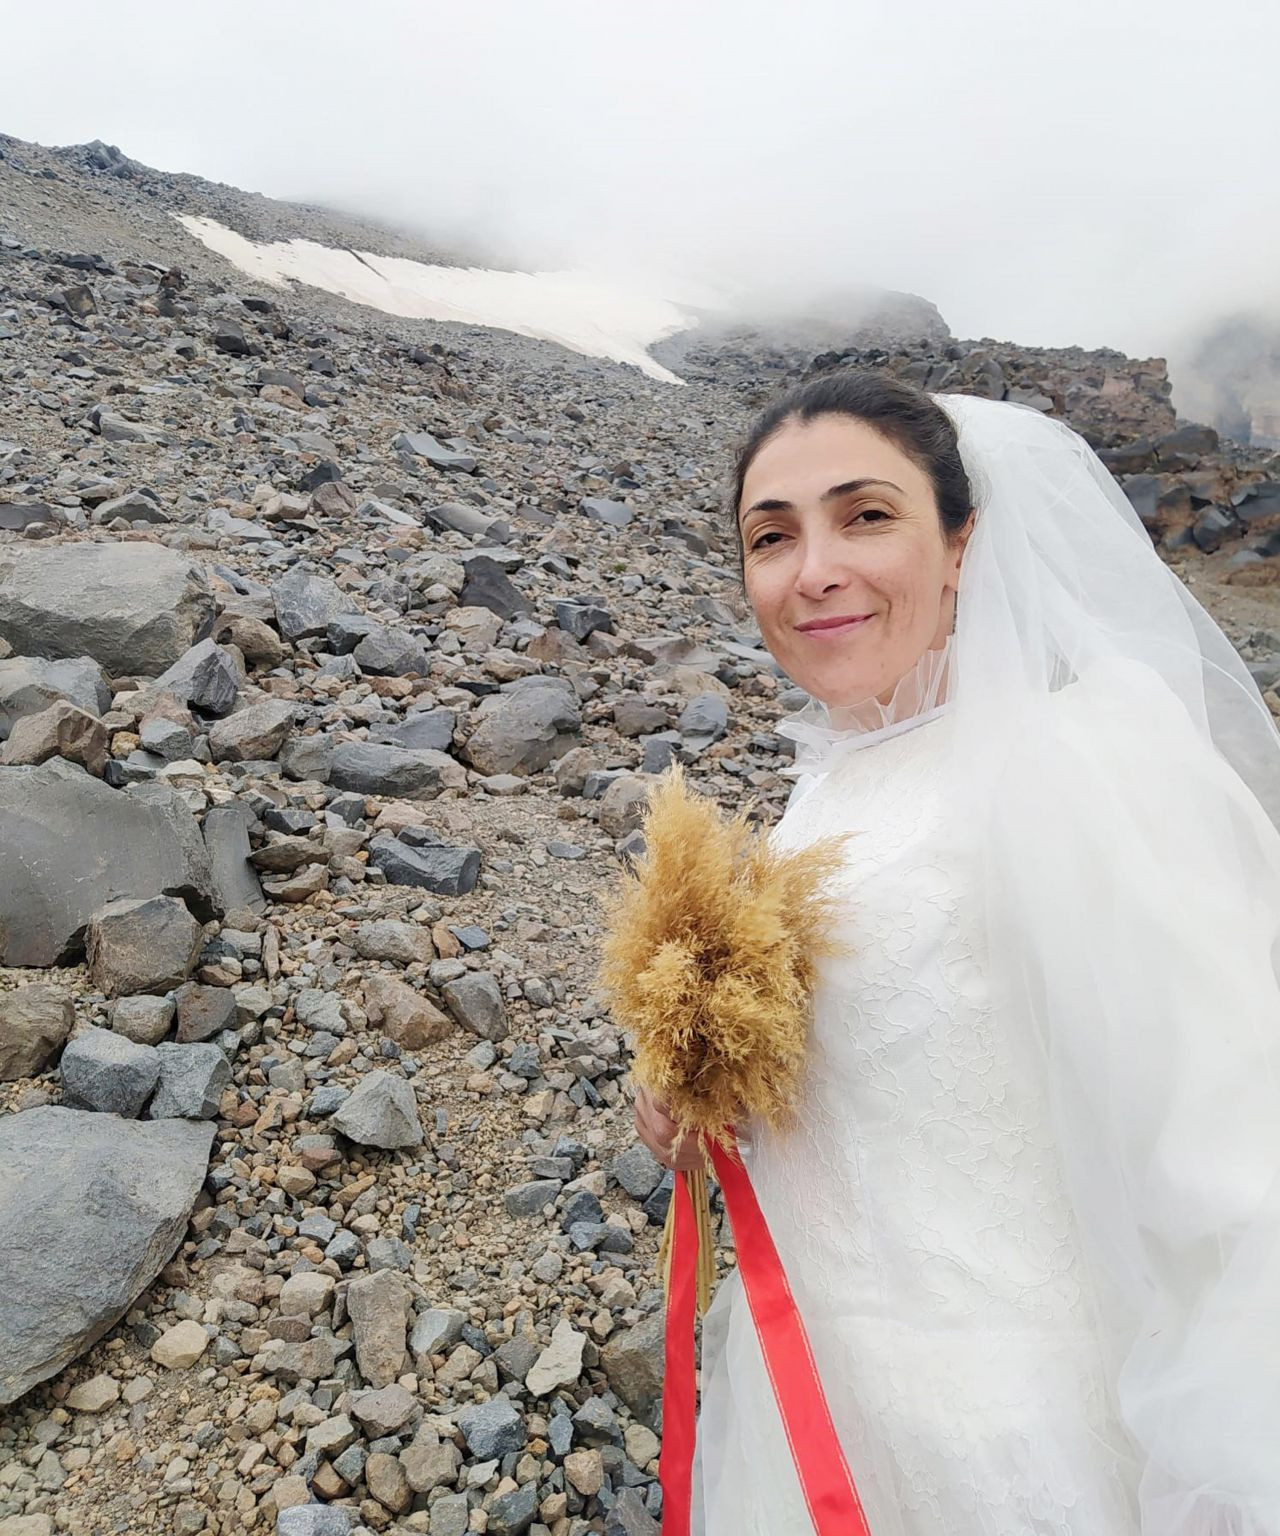 Turkish climber 'marries' Mount Ararat to protest violence against women - Page 2